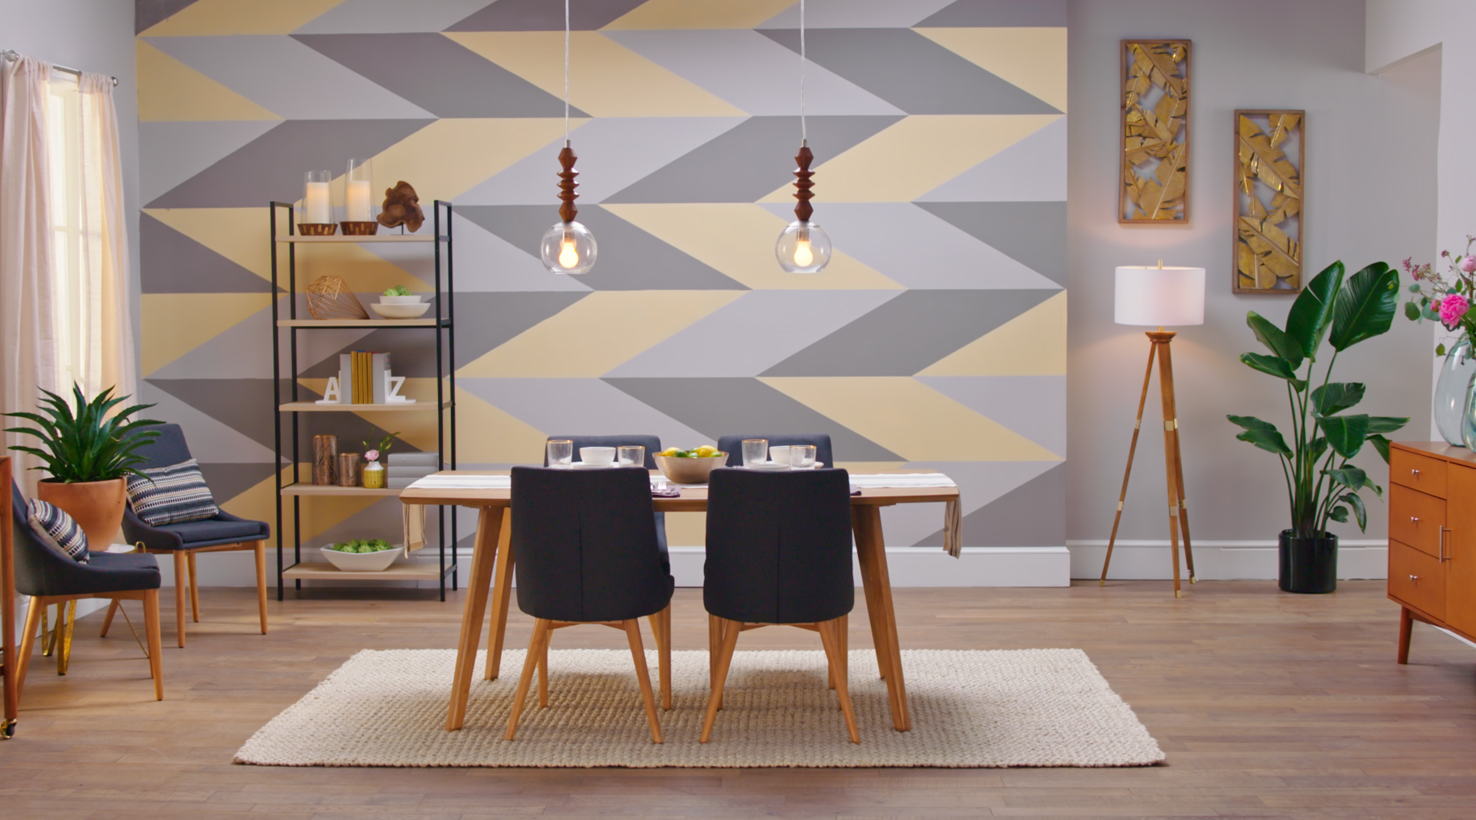 https://images.sherwin-williams.com/content_images/sw-img-dining-neutrals-001-hdr.jpg